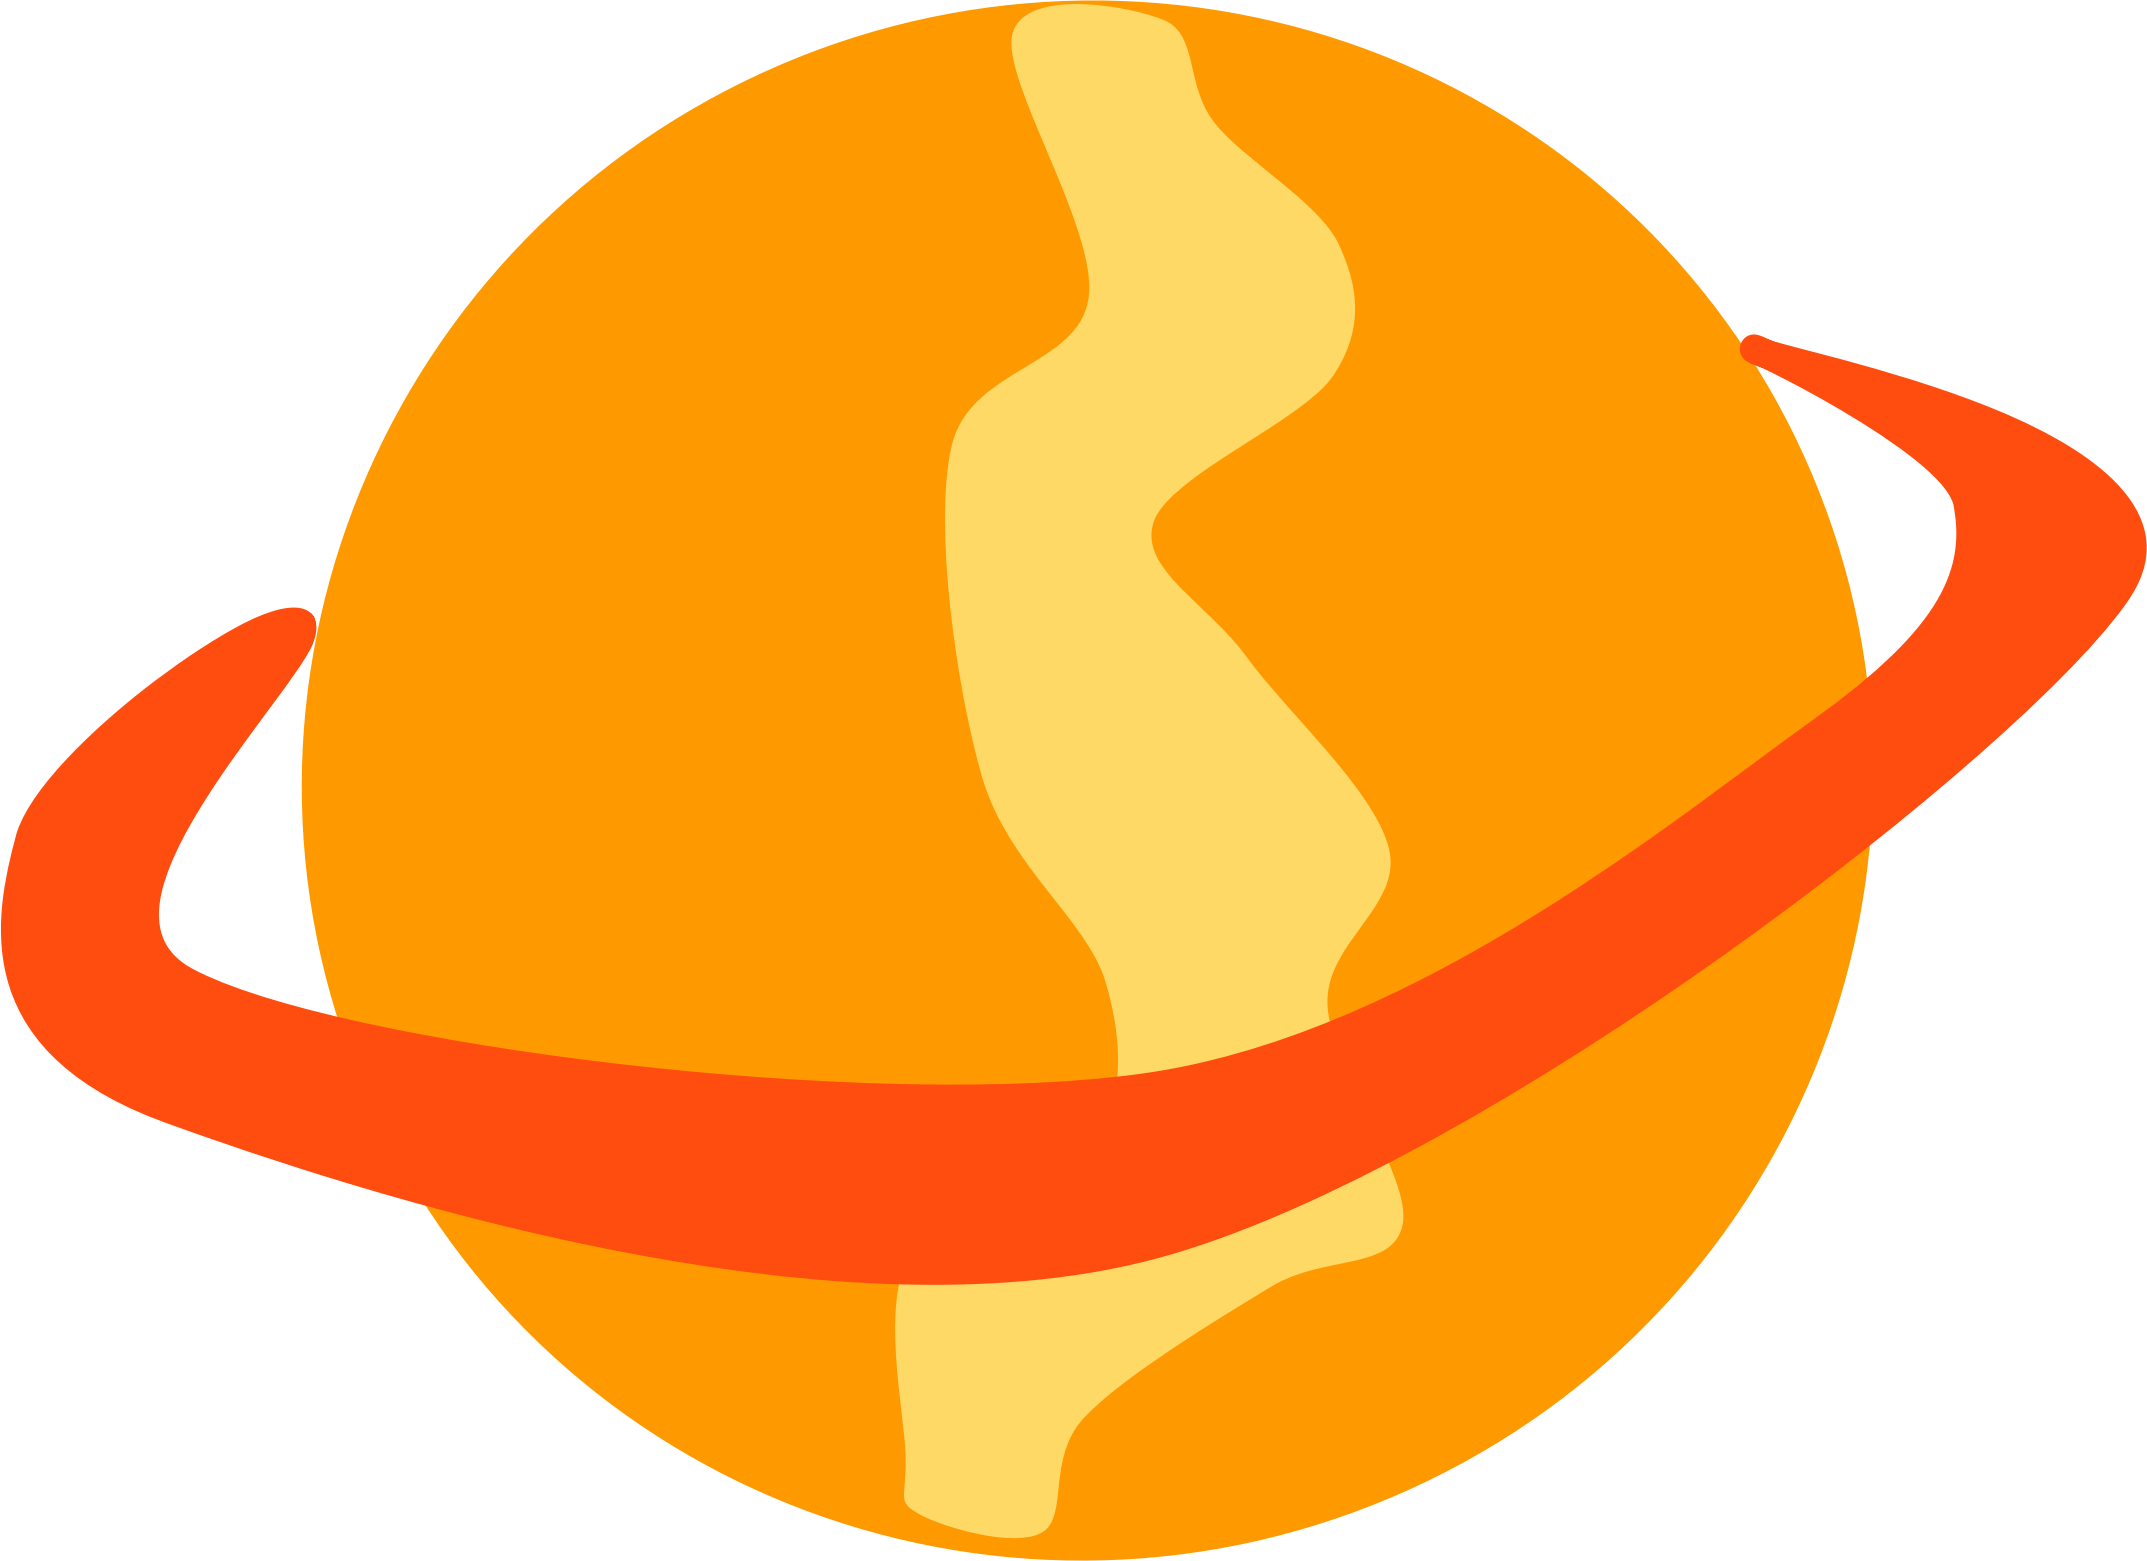 Planet clipart space stuff. Orange icons png free